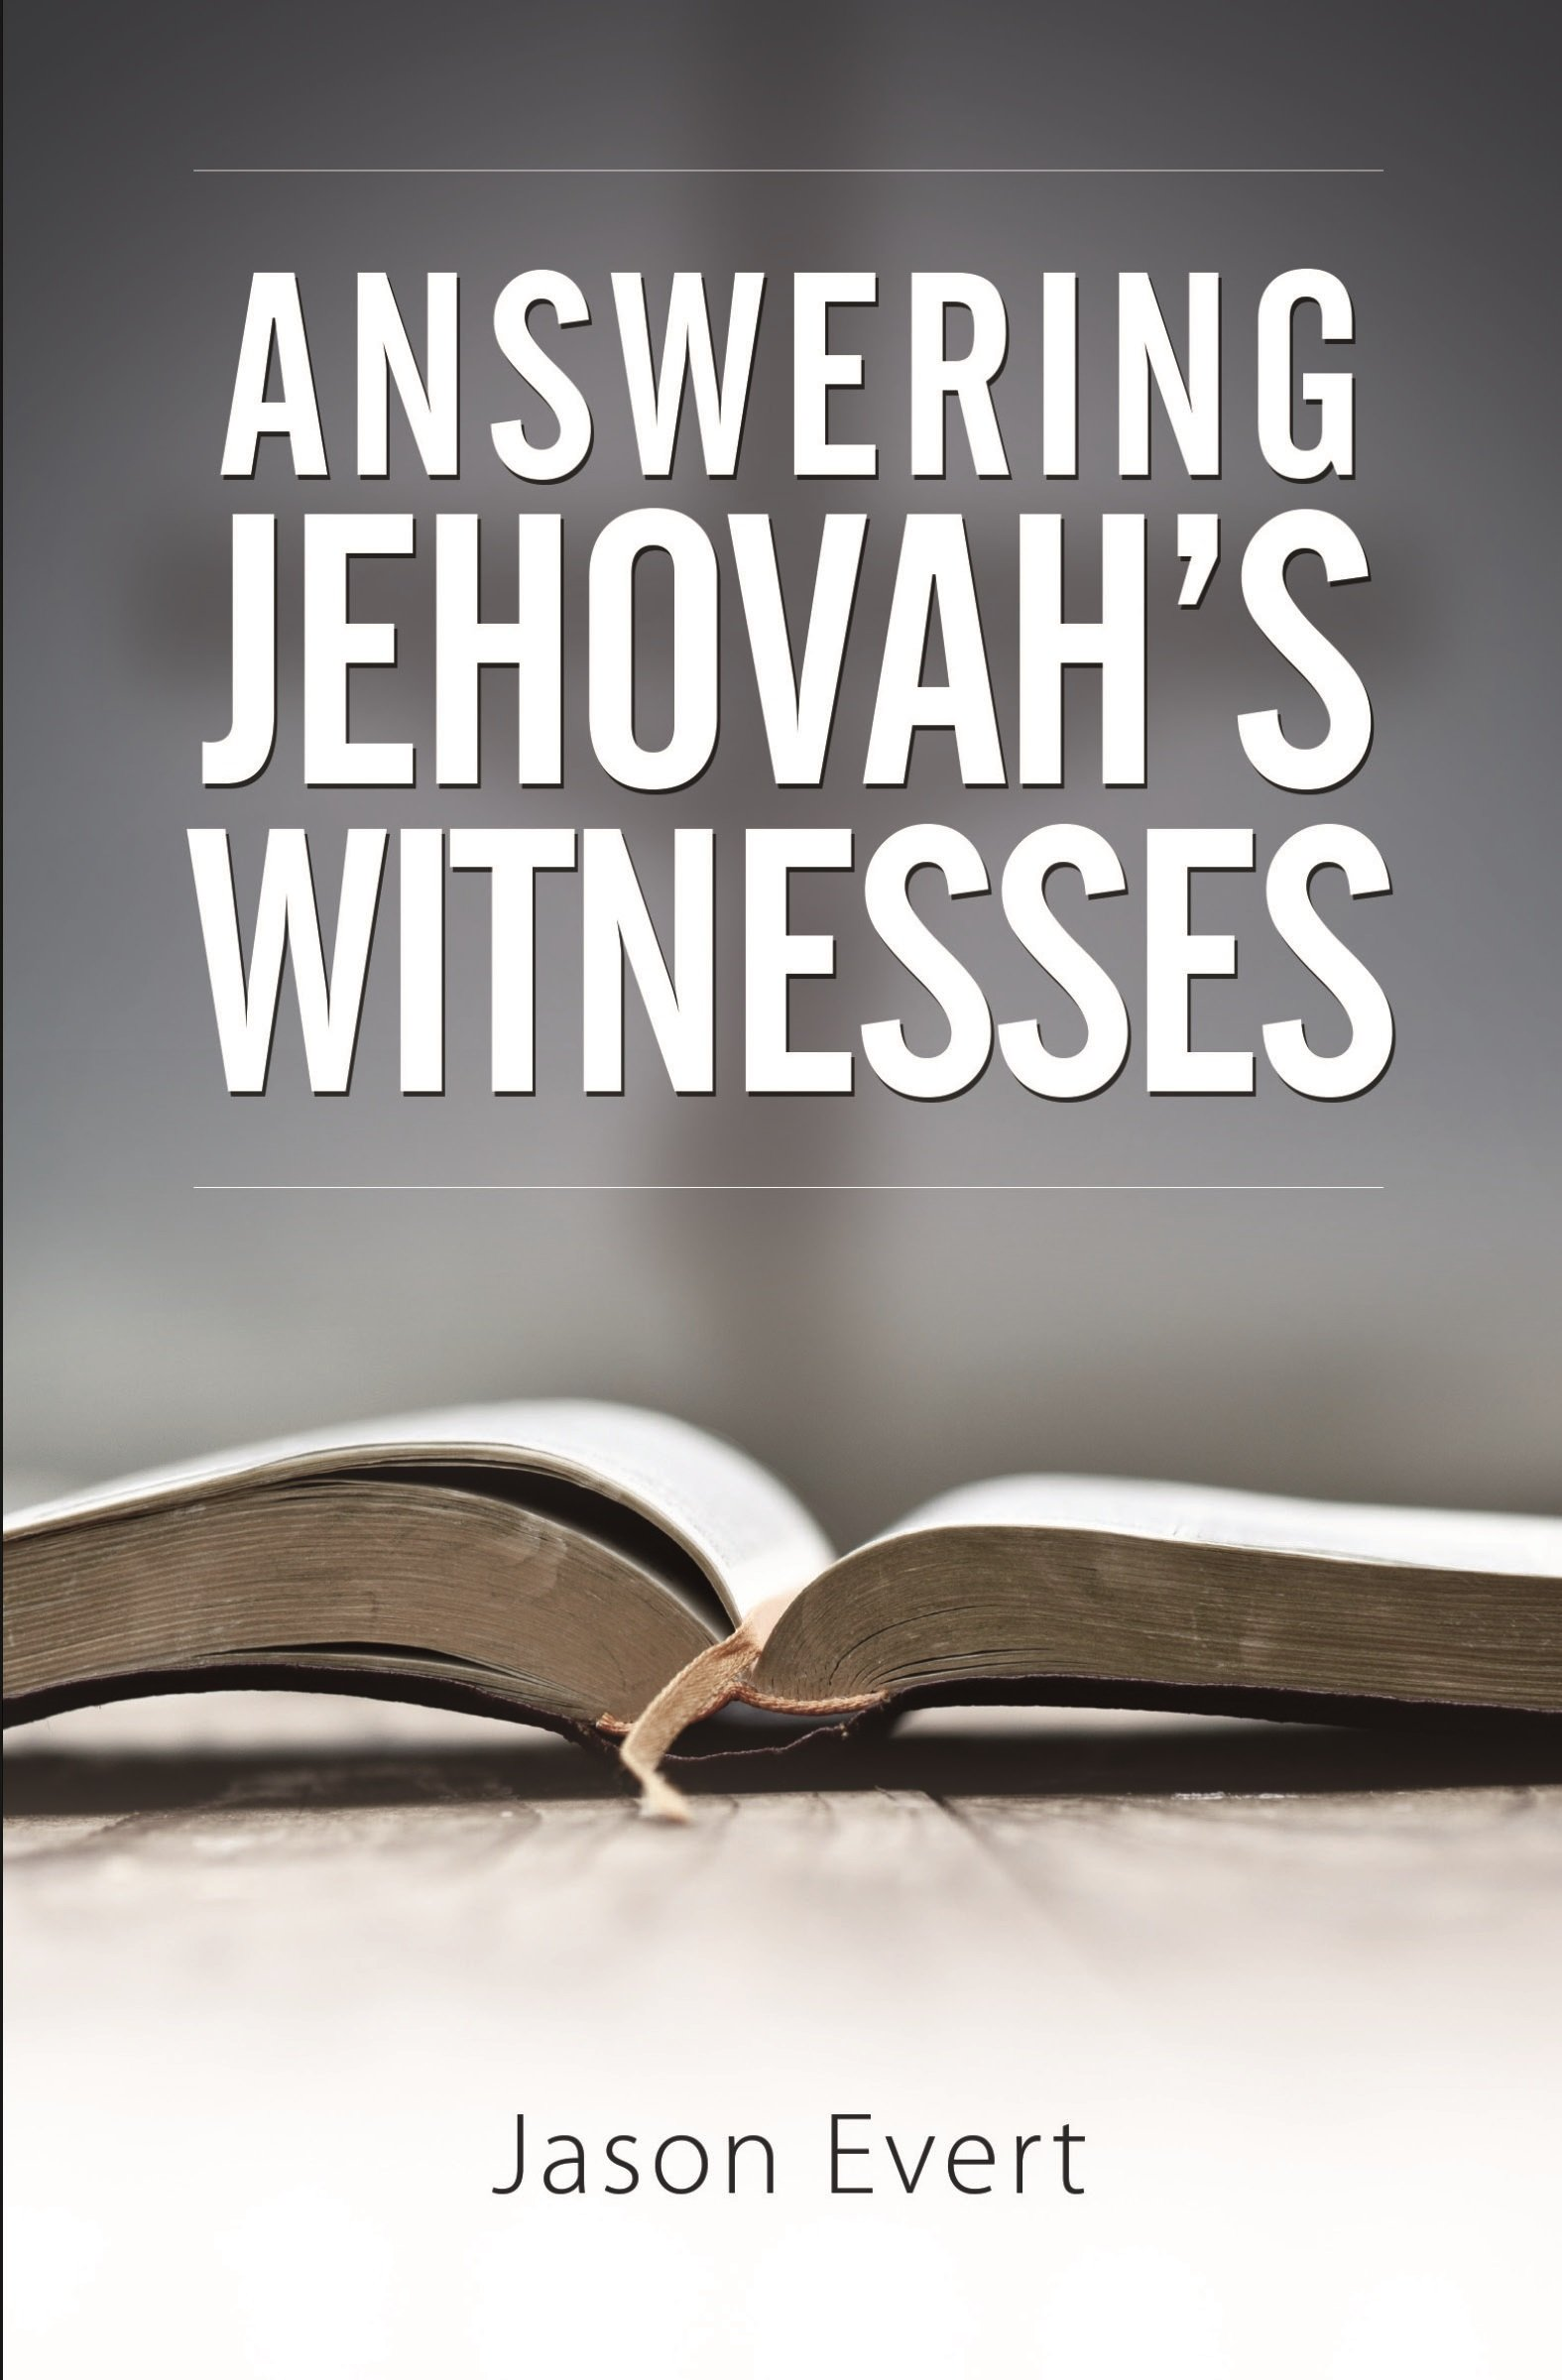 Answering Jehovah's Witnesses: Jason Evert: 9781888992212